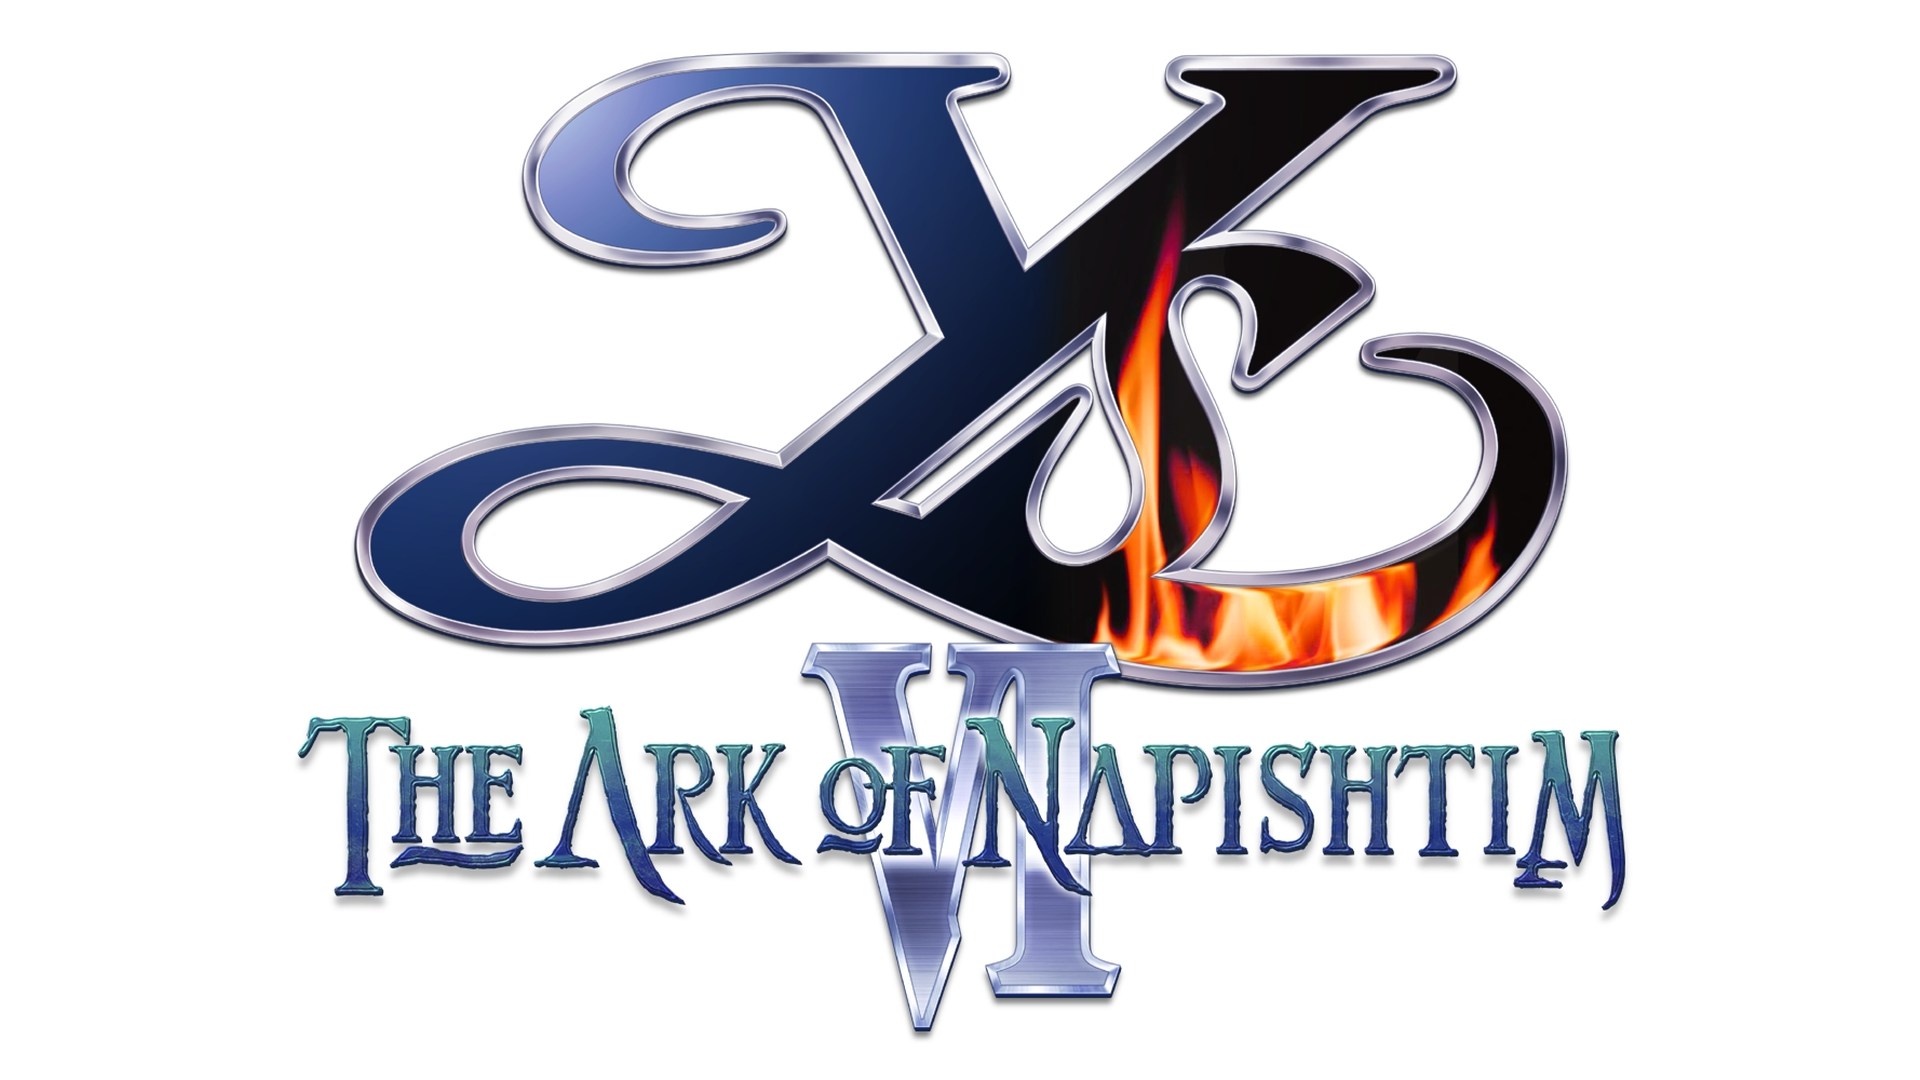 Ys VI: The Ark of Napishtim Logo